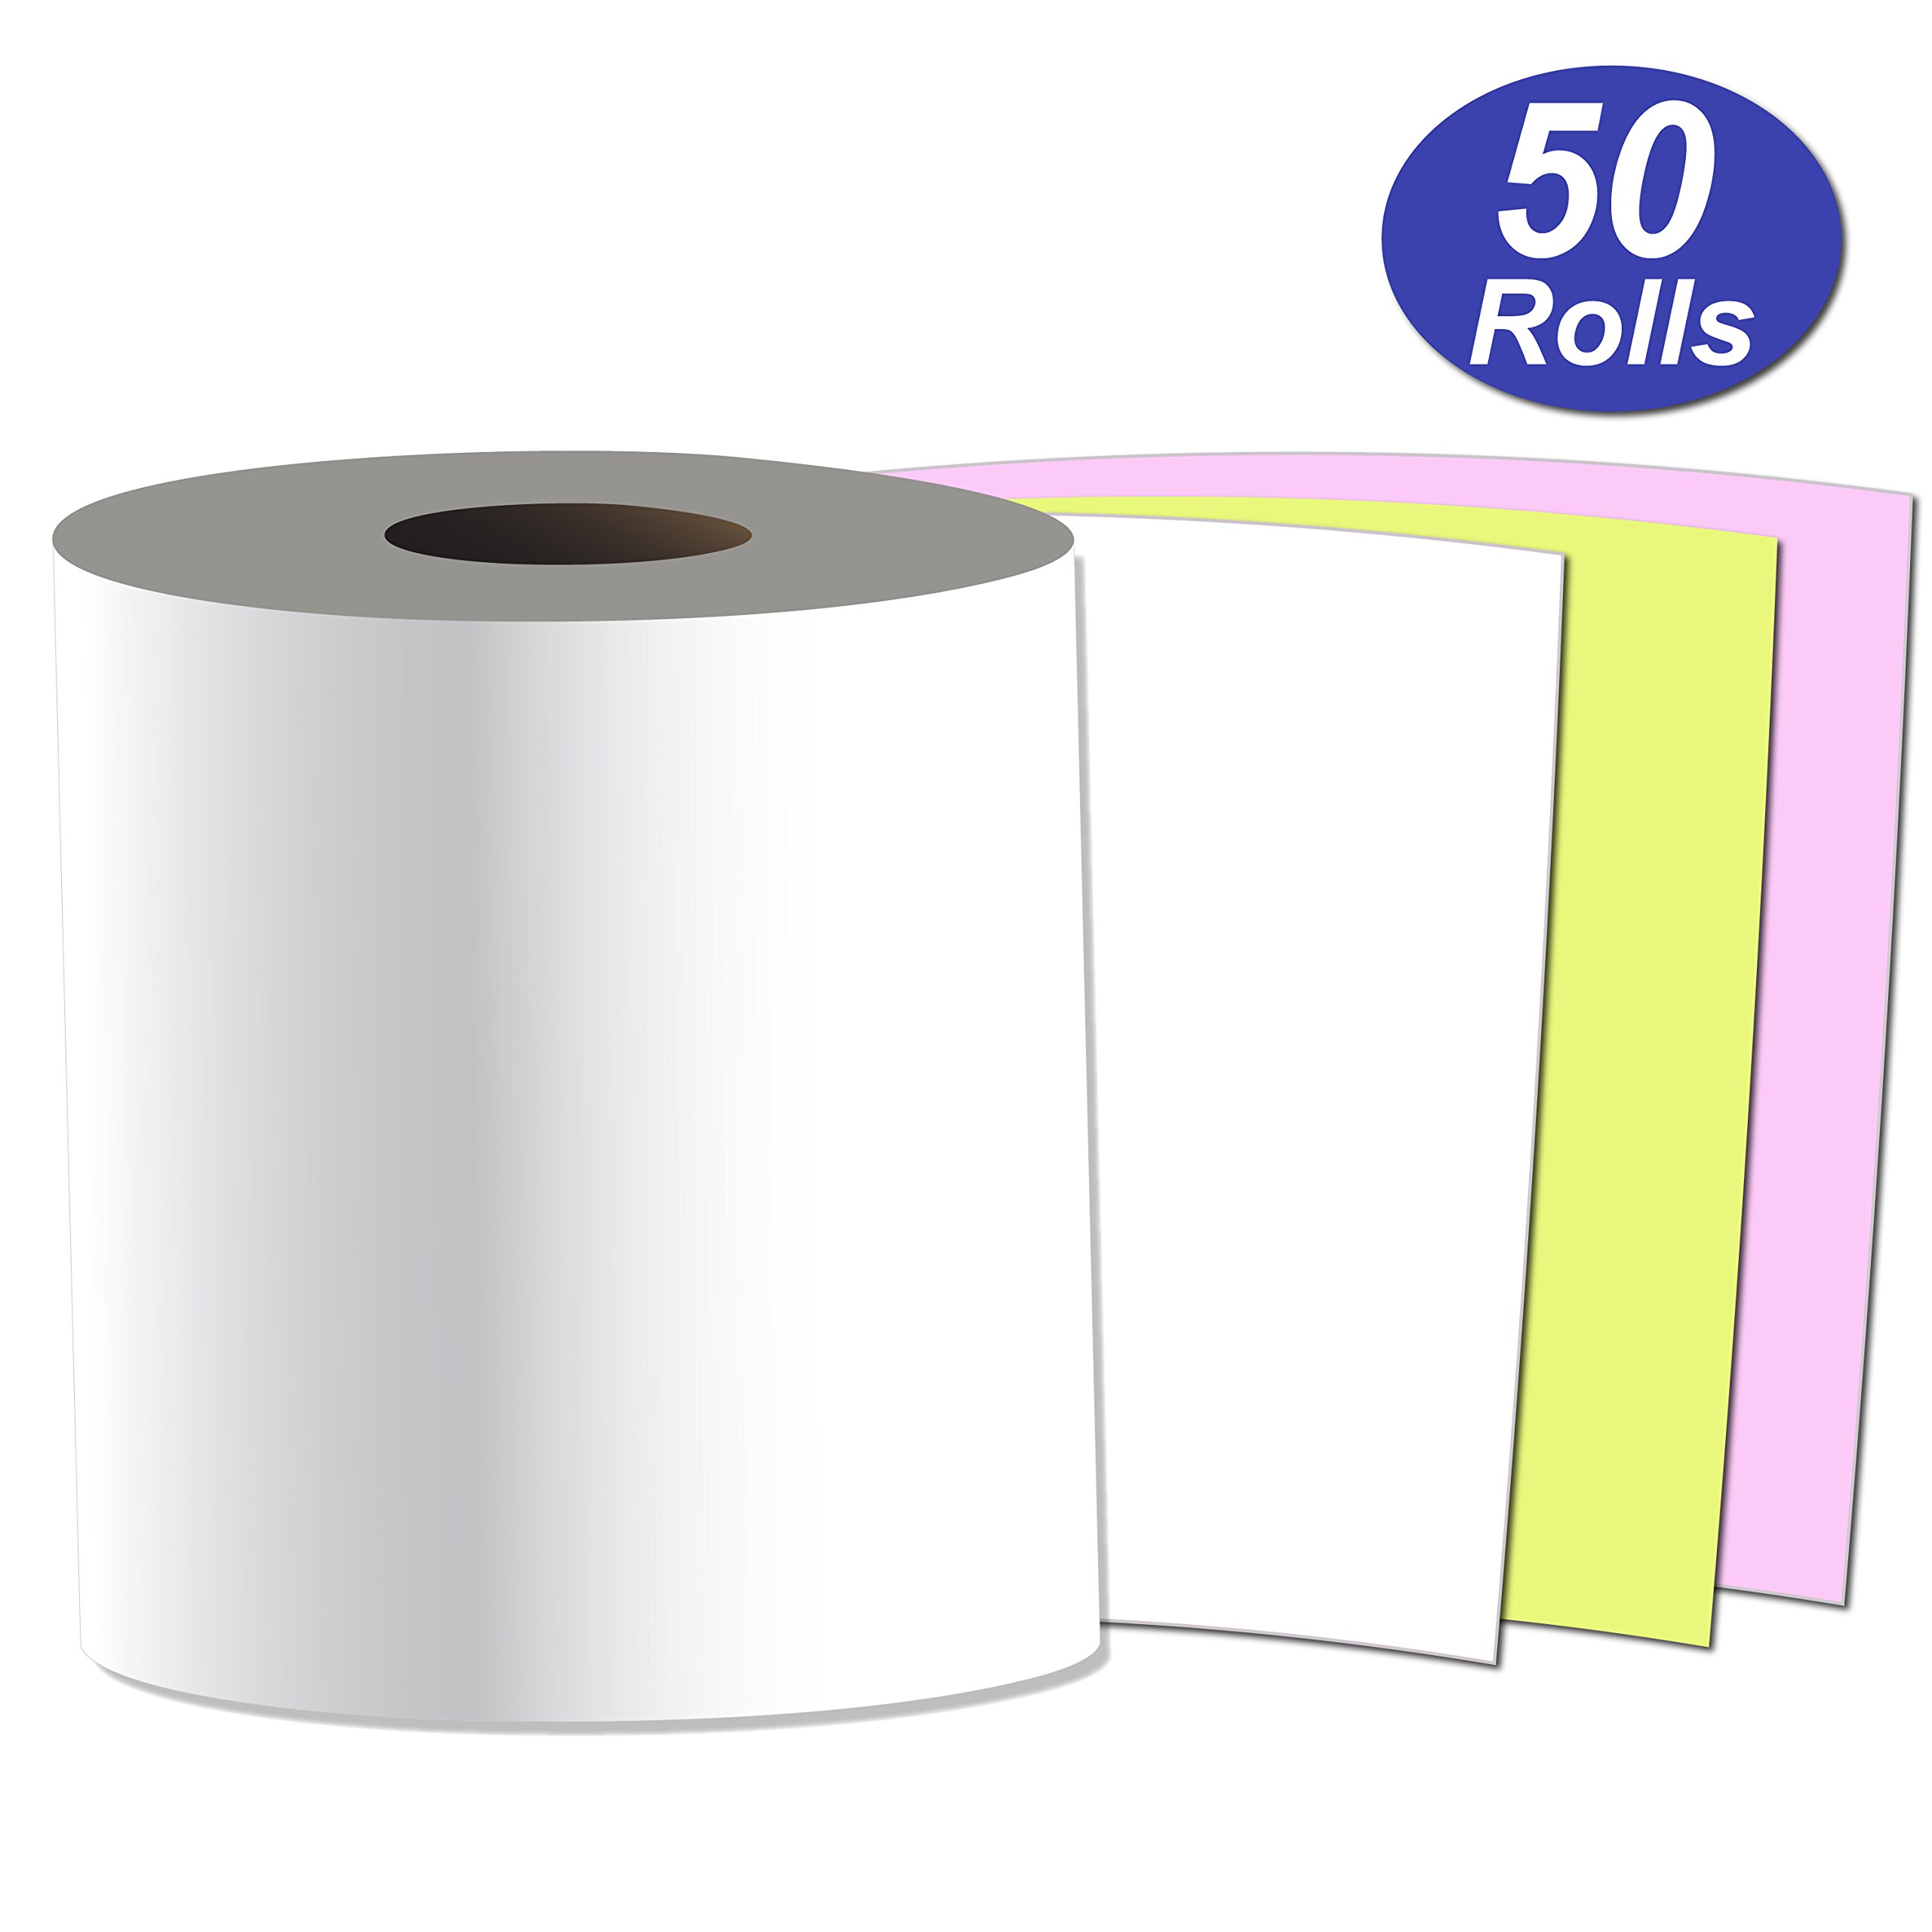 Alliance, Receipt Rolls, Paper, 3'' x 65' x 7/16'' Core, 3 Ply White/Canary/Pink, 50 Rolls Per Carton by Alliance